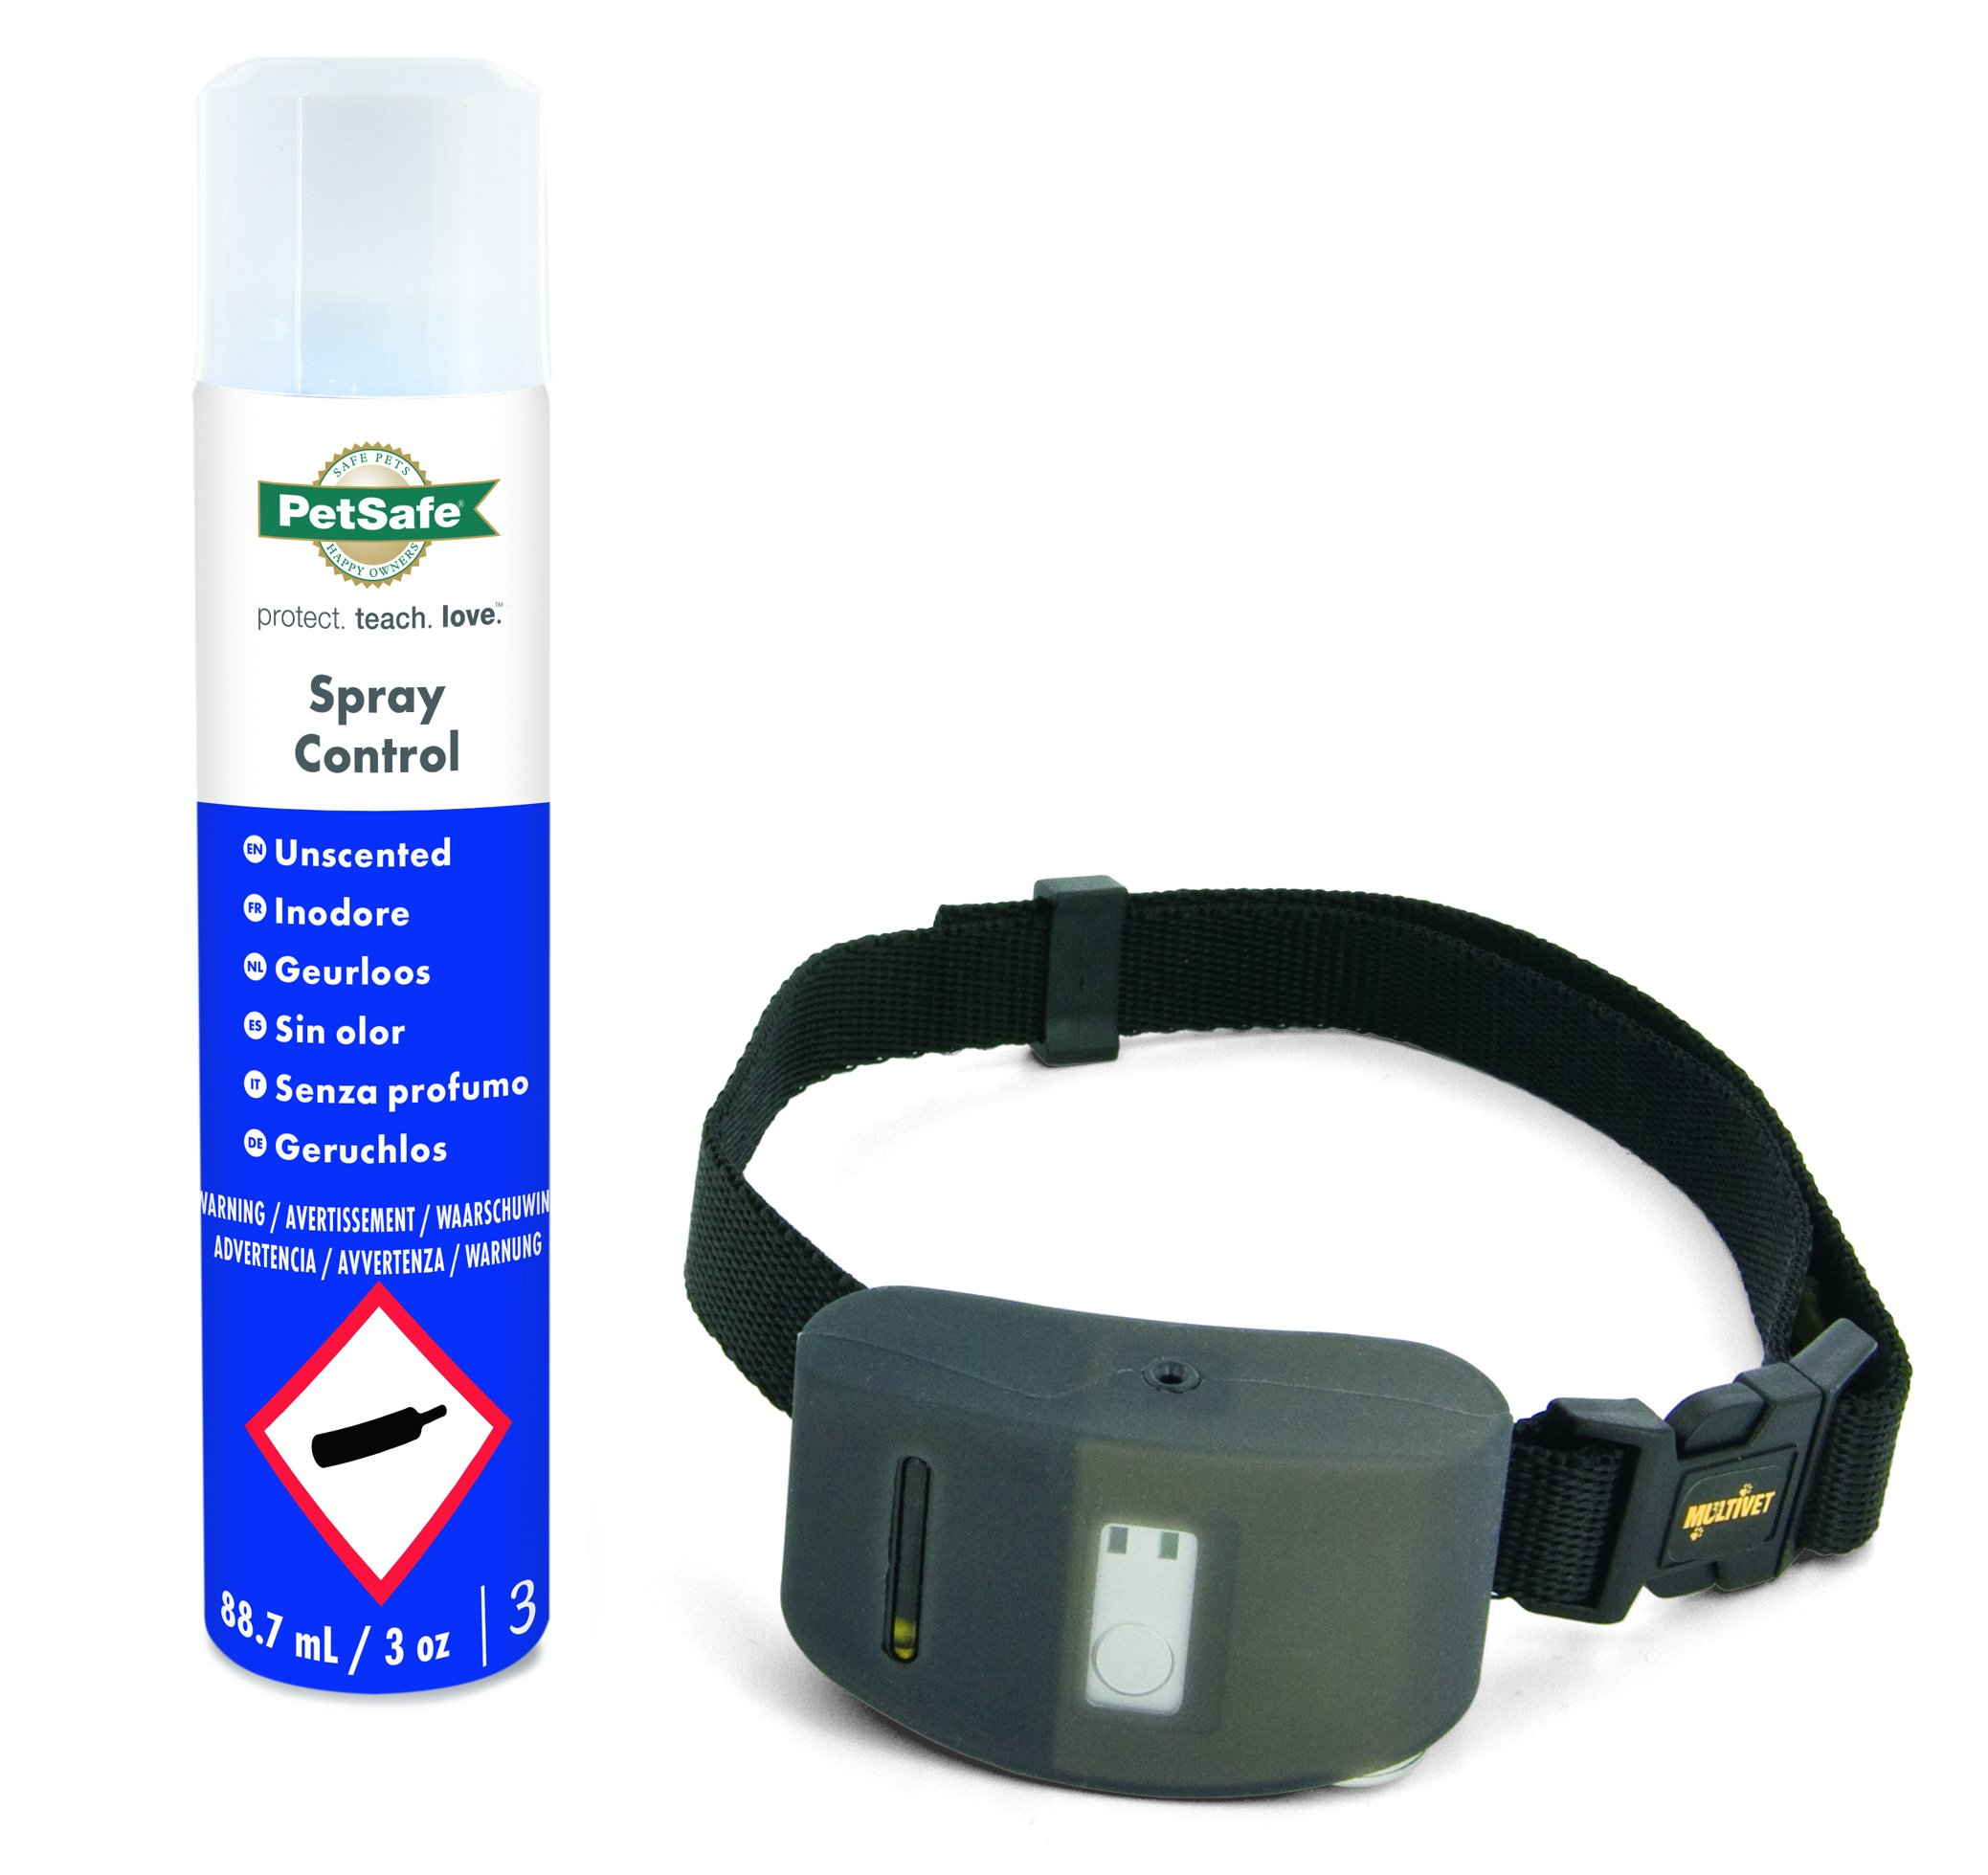 PetSafe, SBC-10 Spray Bark control, Necksize up to 71 cm, Anti Bark, Automatic, Safe, Spray Stimulation, Dog Collar